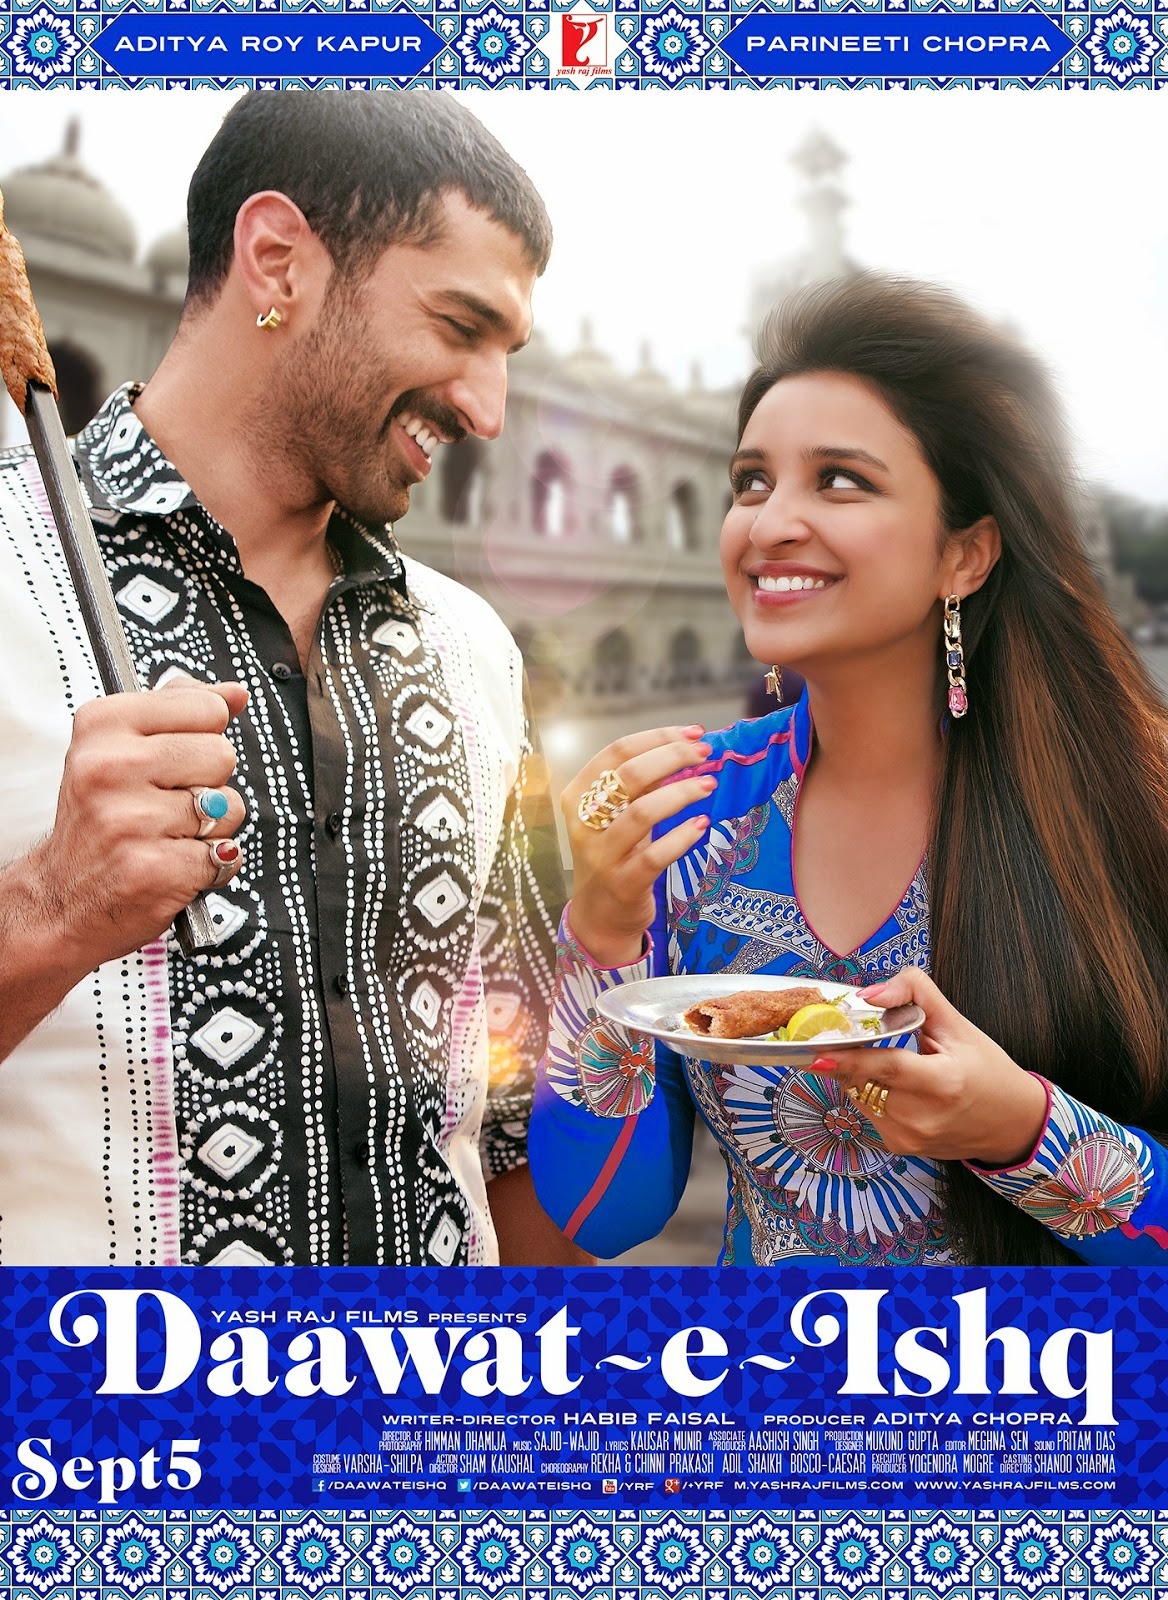 Movie Review: 'Daawat-e-Ishq' celebration of love and food ... Daawat E Ishq